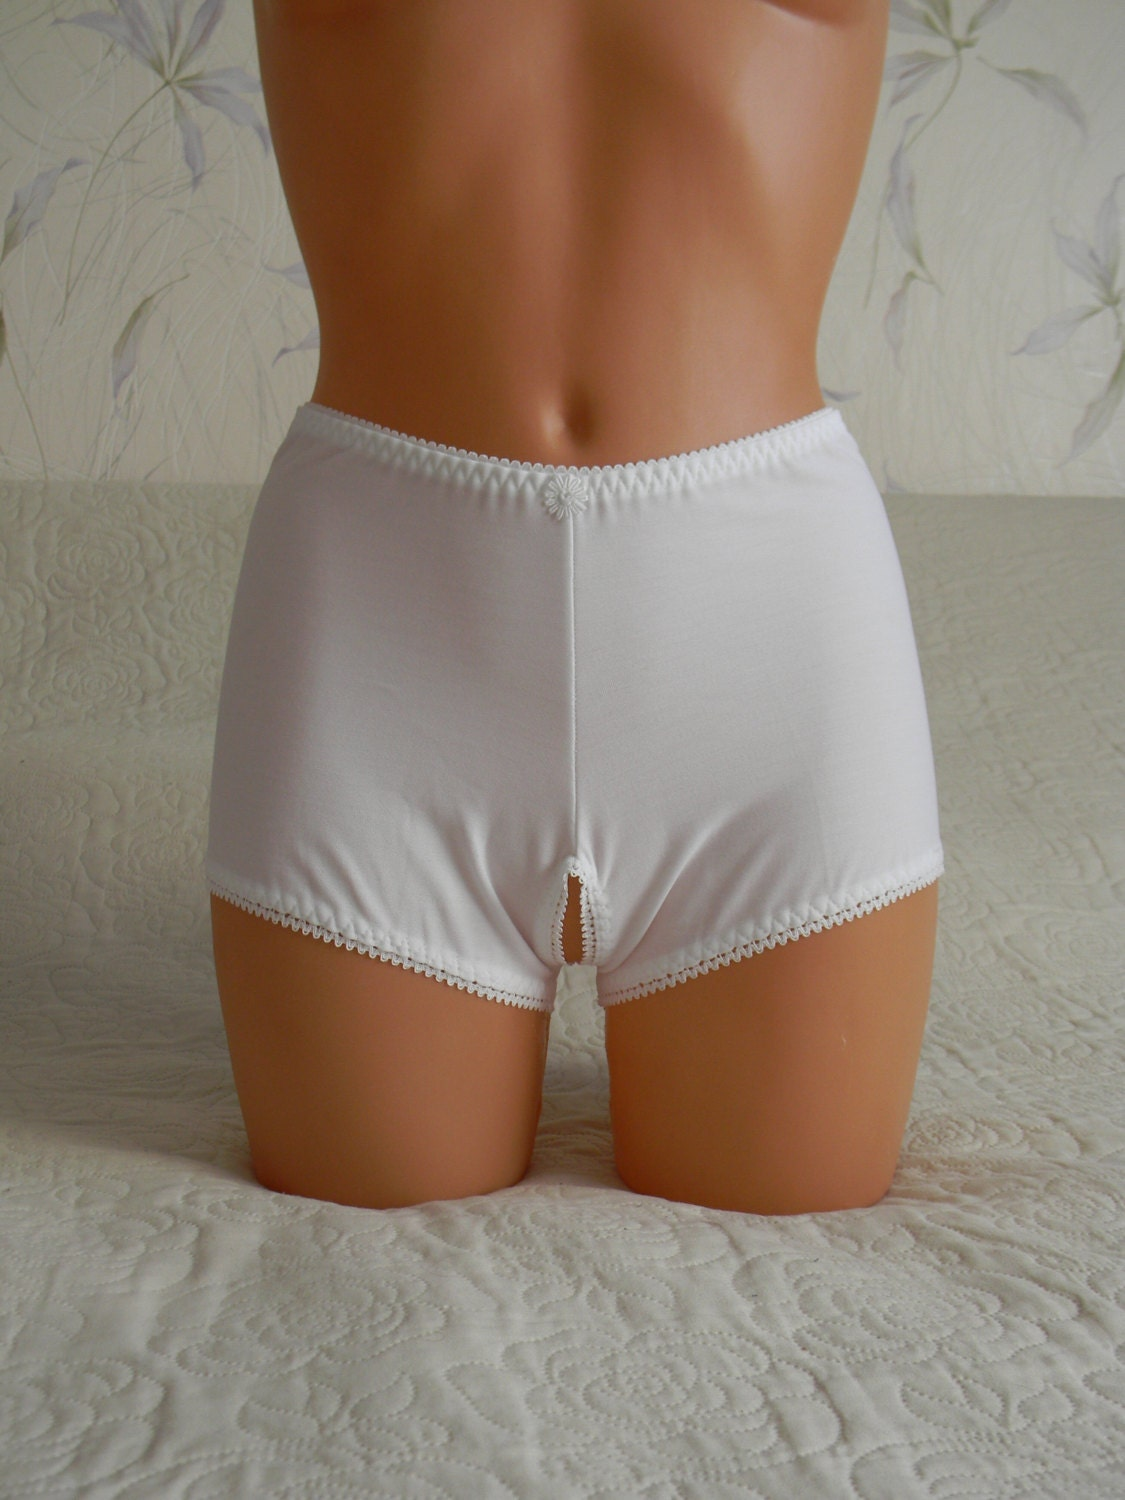 White crotchless panties